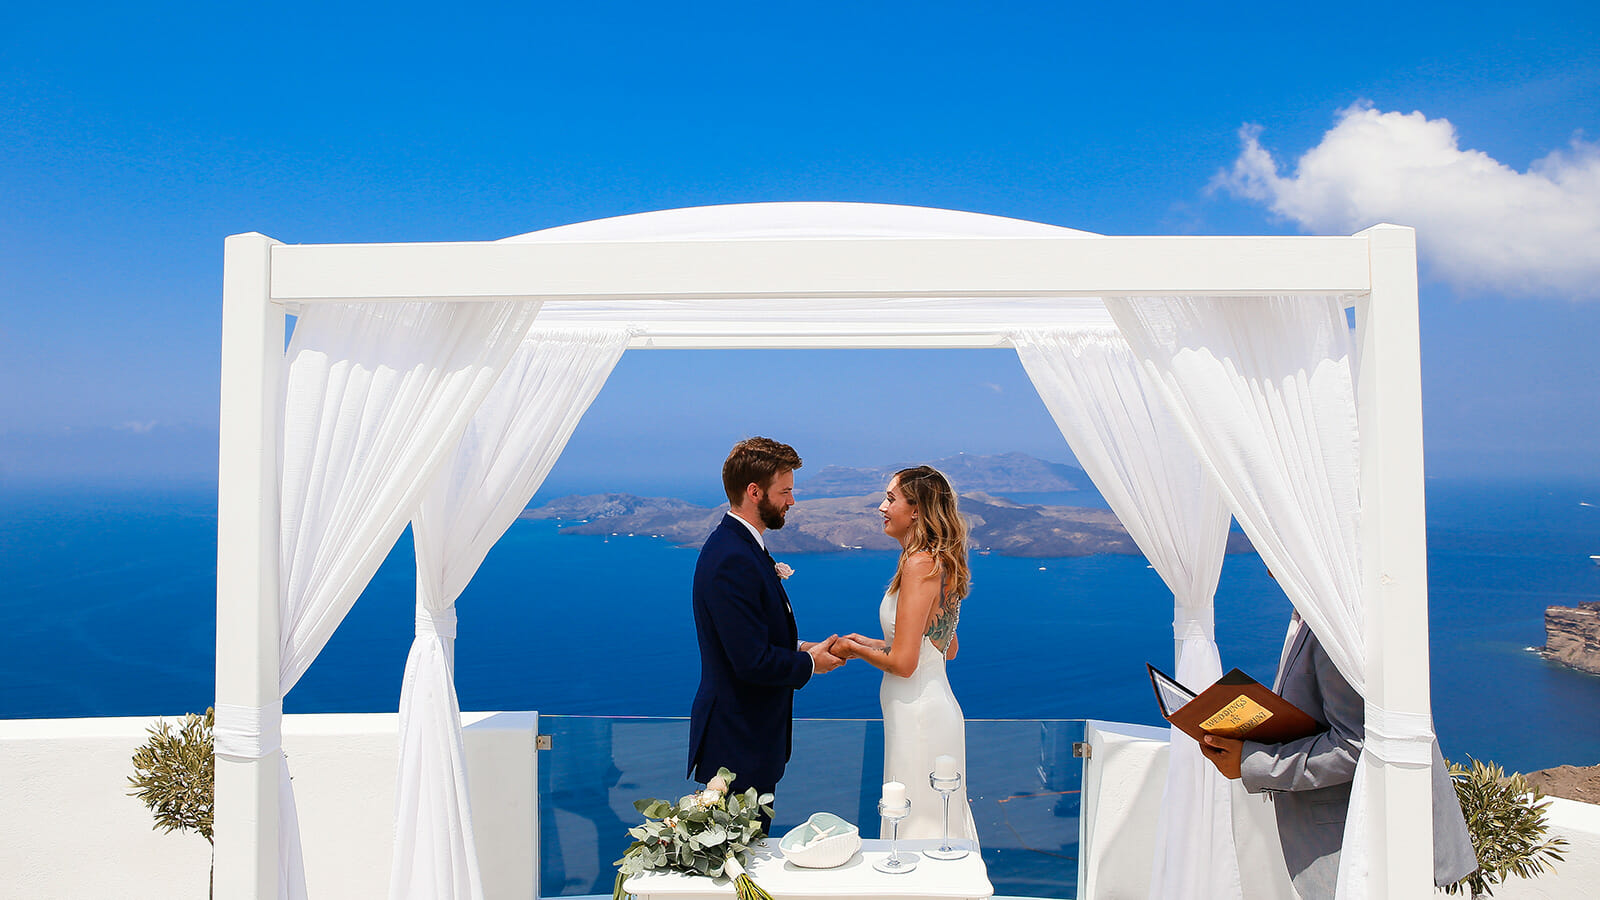 Weddings in Santorini Santorini Greece Wedding Packages 1600x900